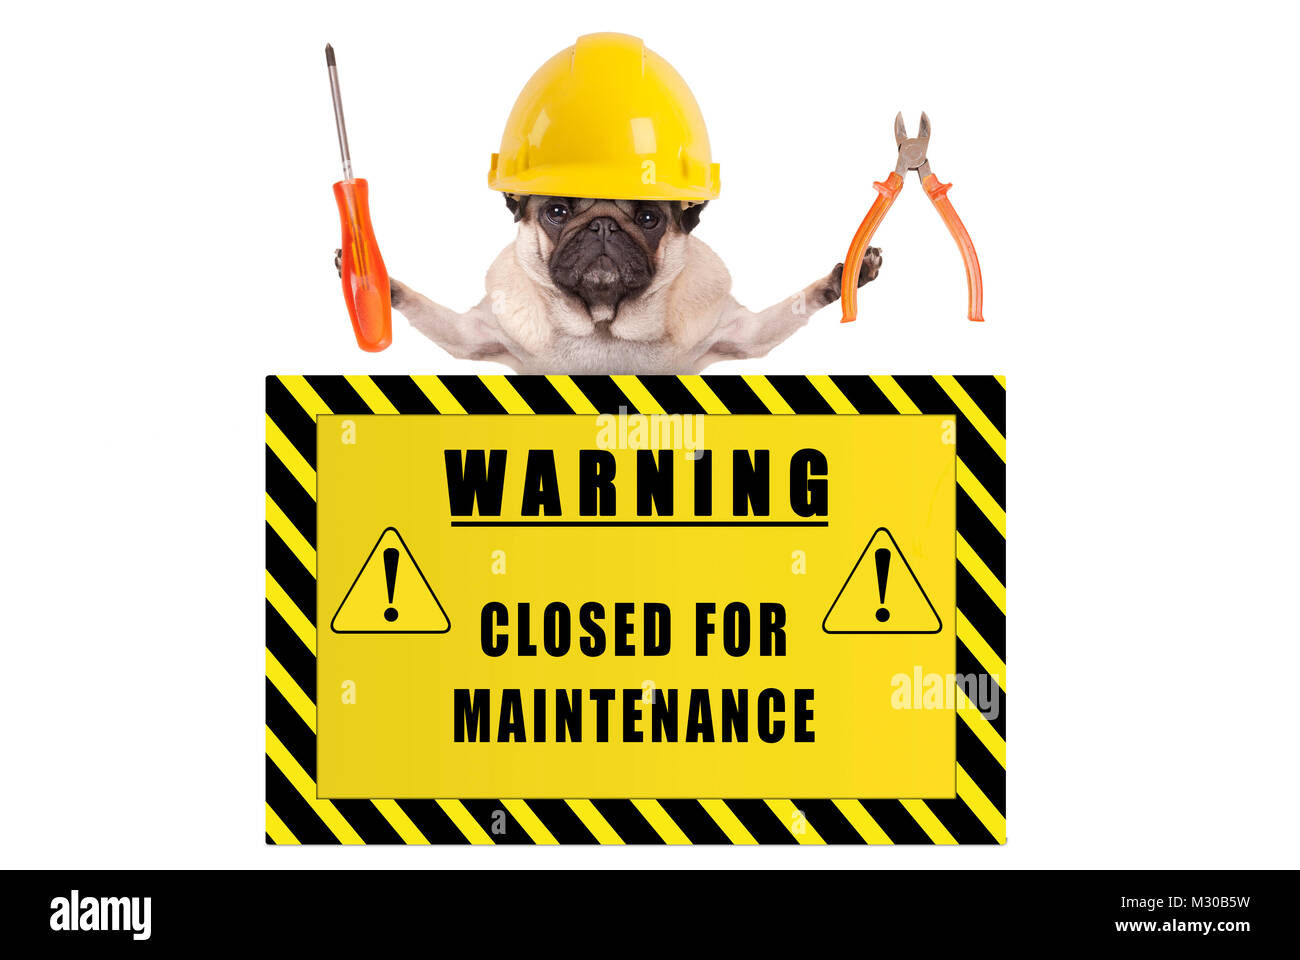 pug dog with constructor safety helmet holding pliers and screwdriver with yellow warning sign saying closed for - Stock Image